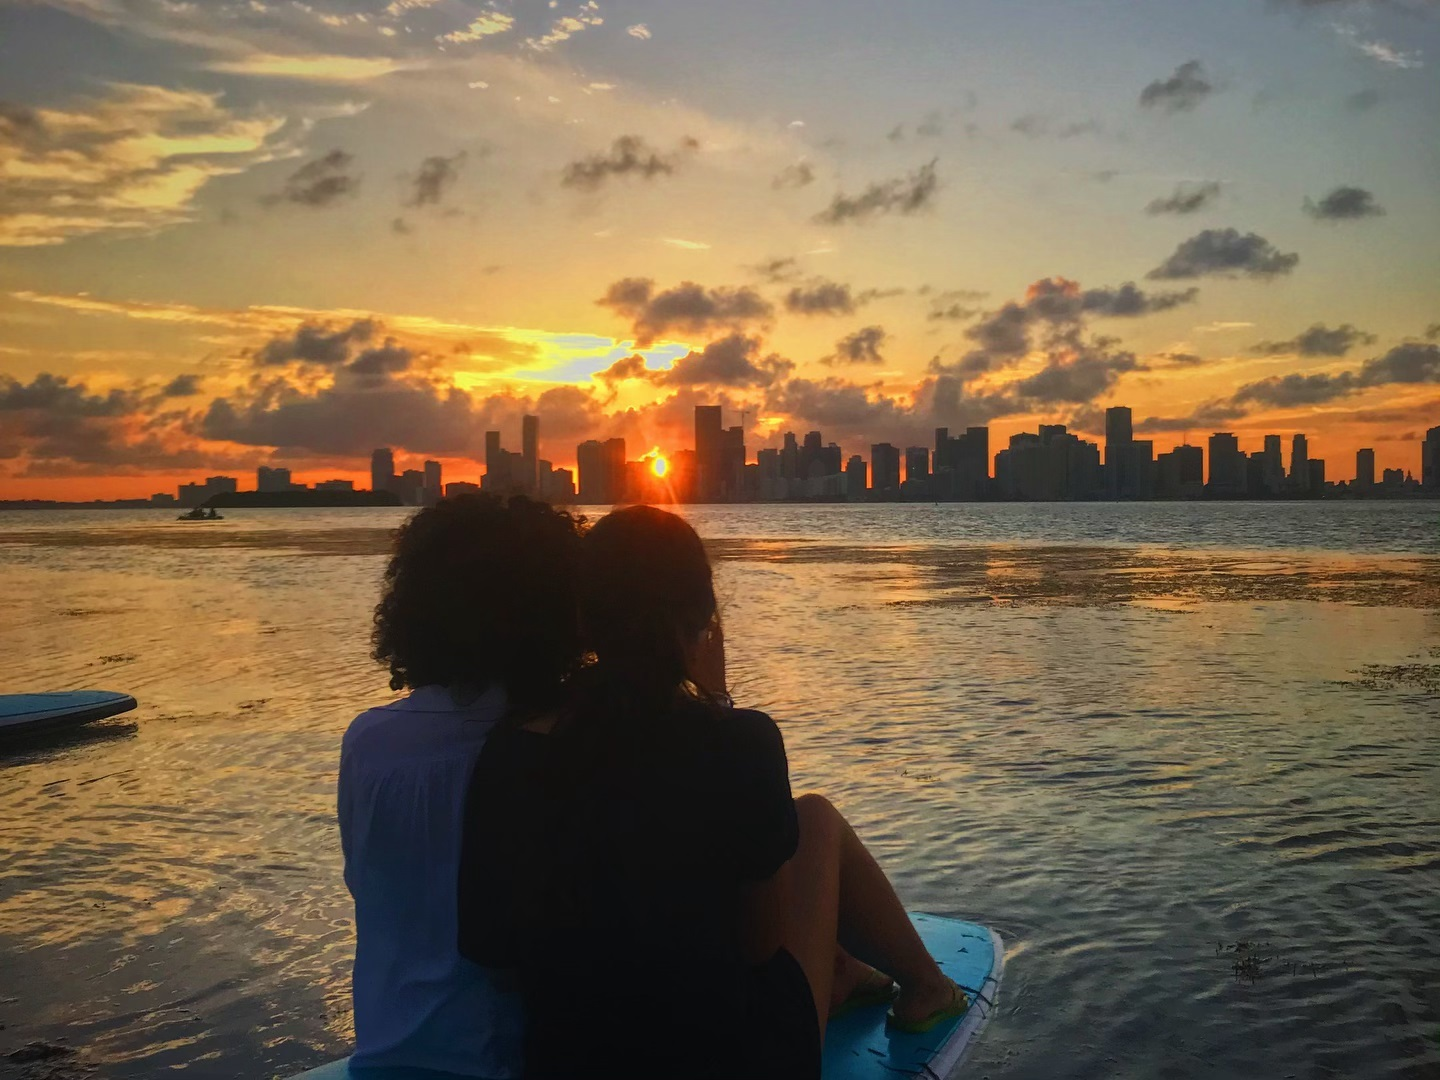 Sunset Kayak & Paddleboard Adventure Tours - August 7th, 15th, and 28th